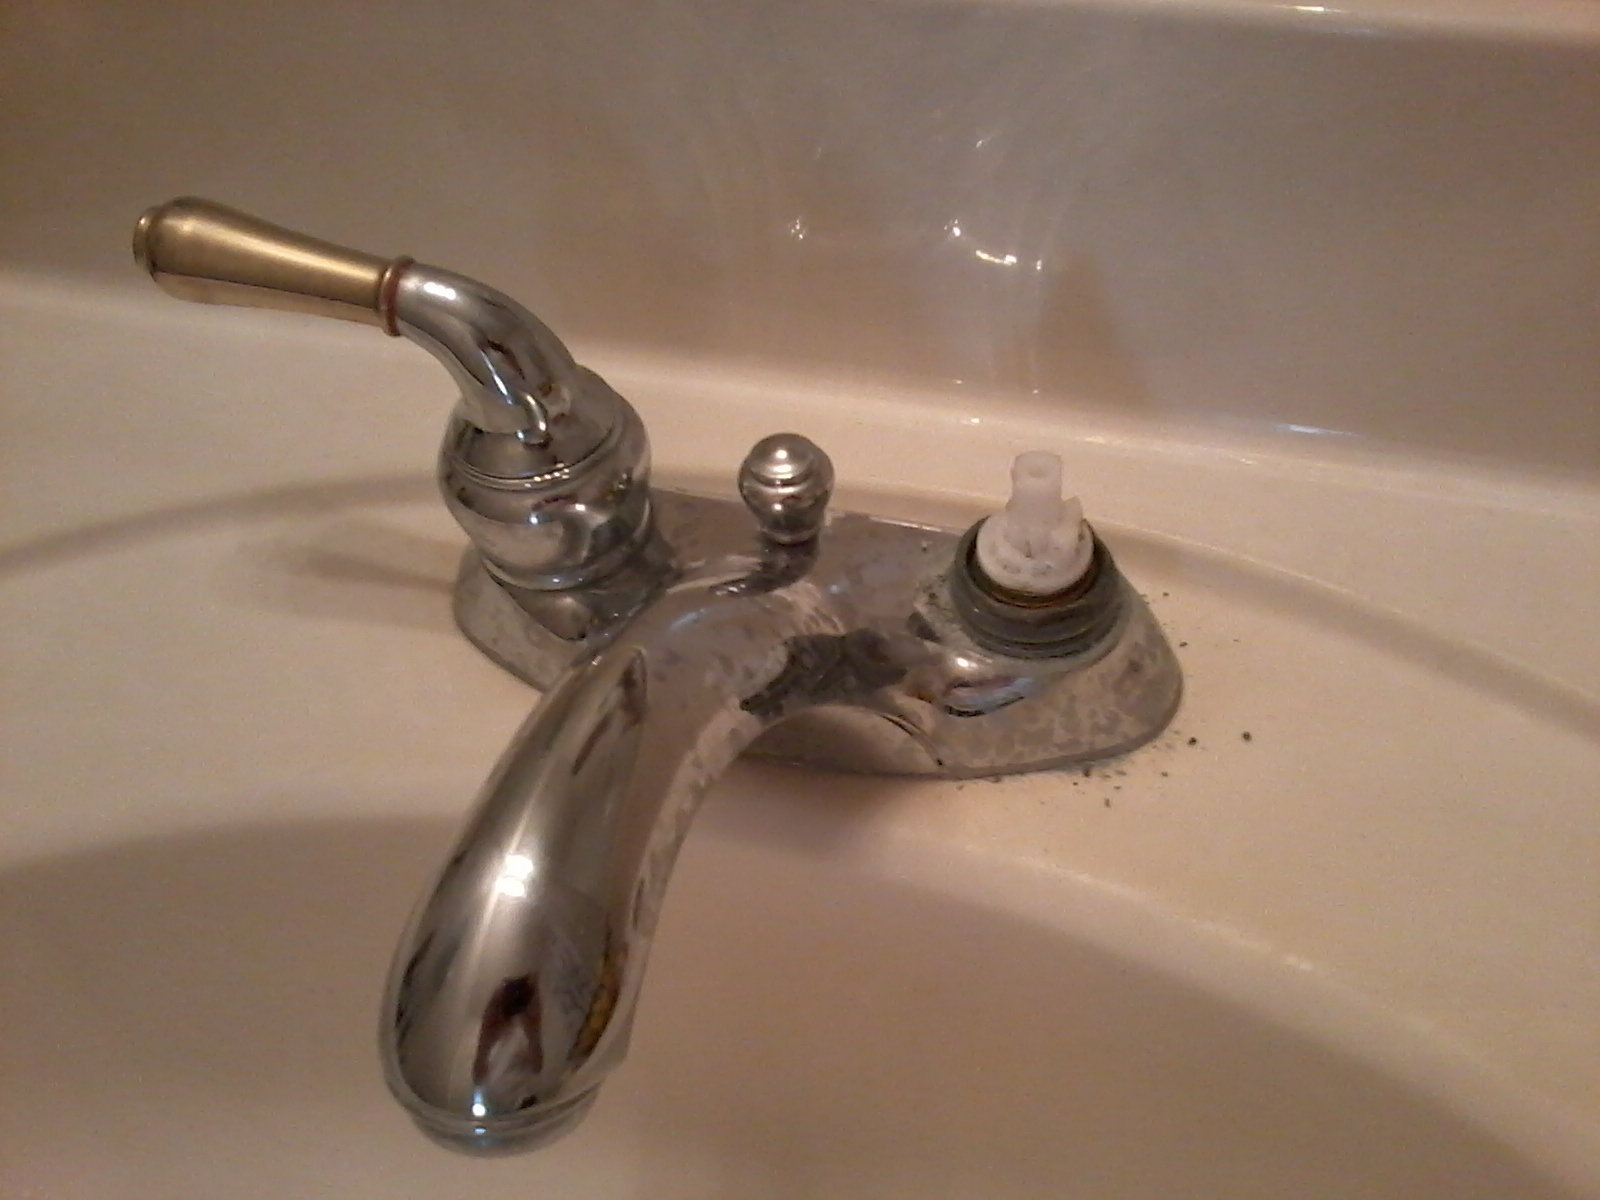 Bath faucet leaking... Some pics and question. Need help. (sink ...